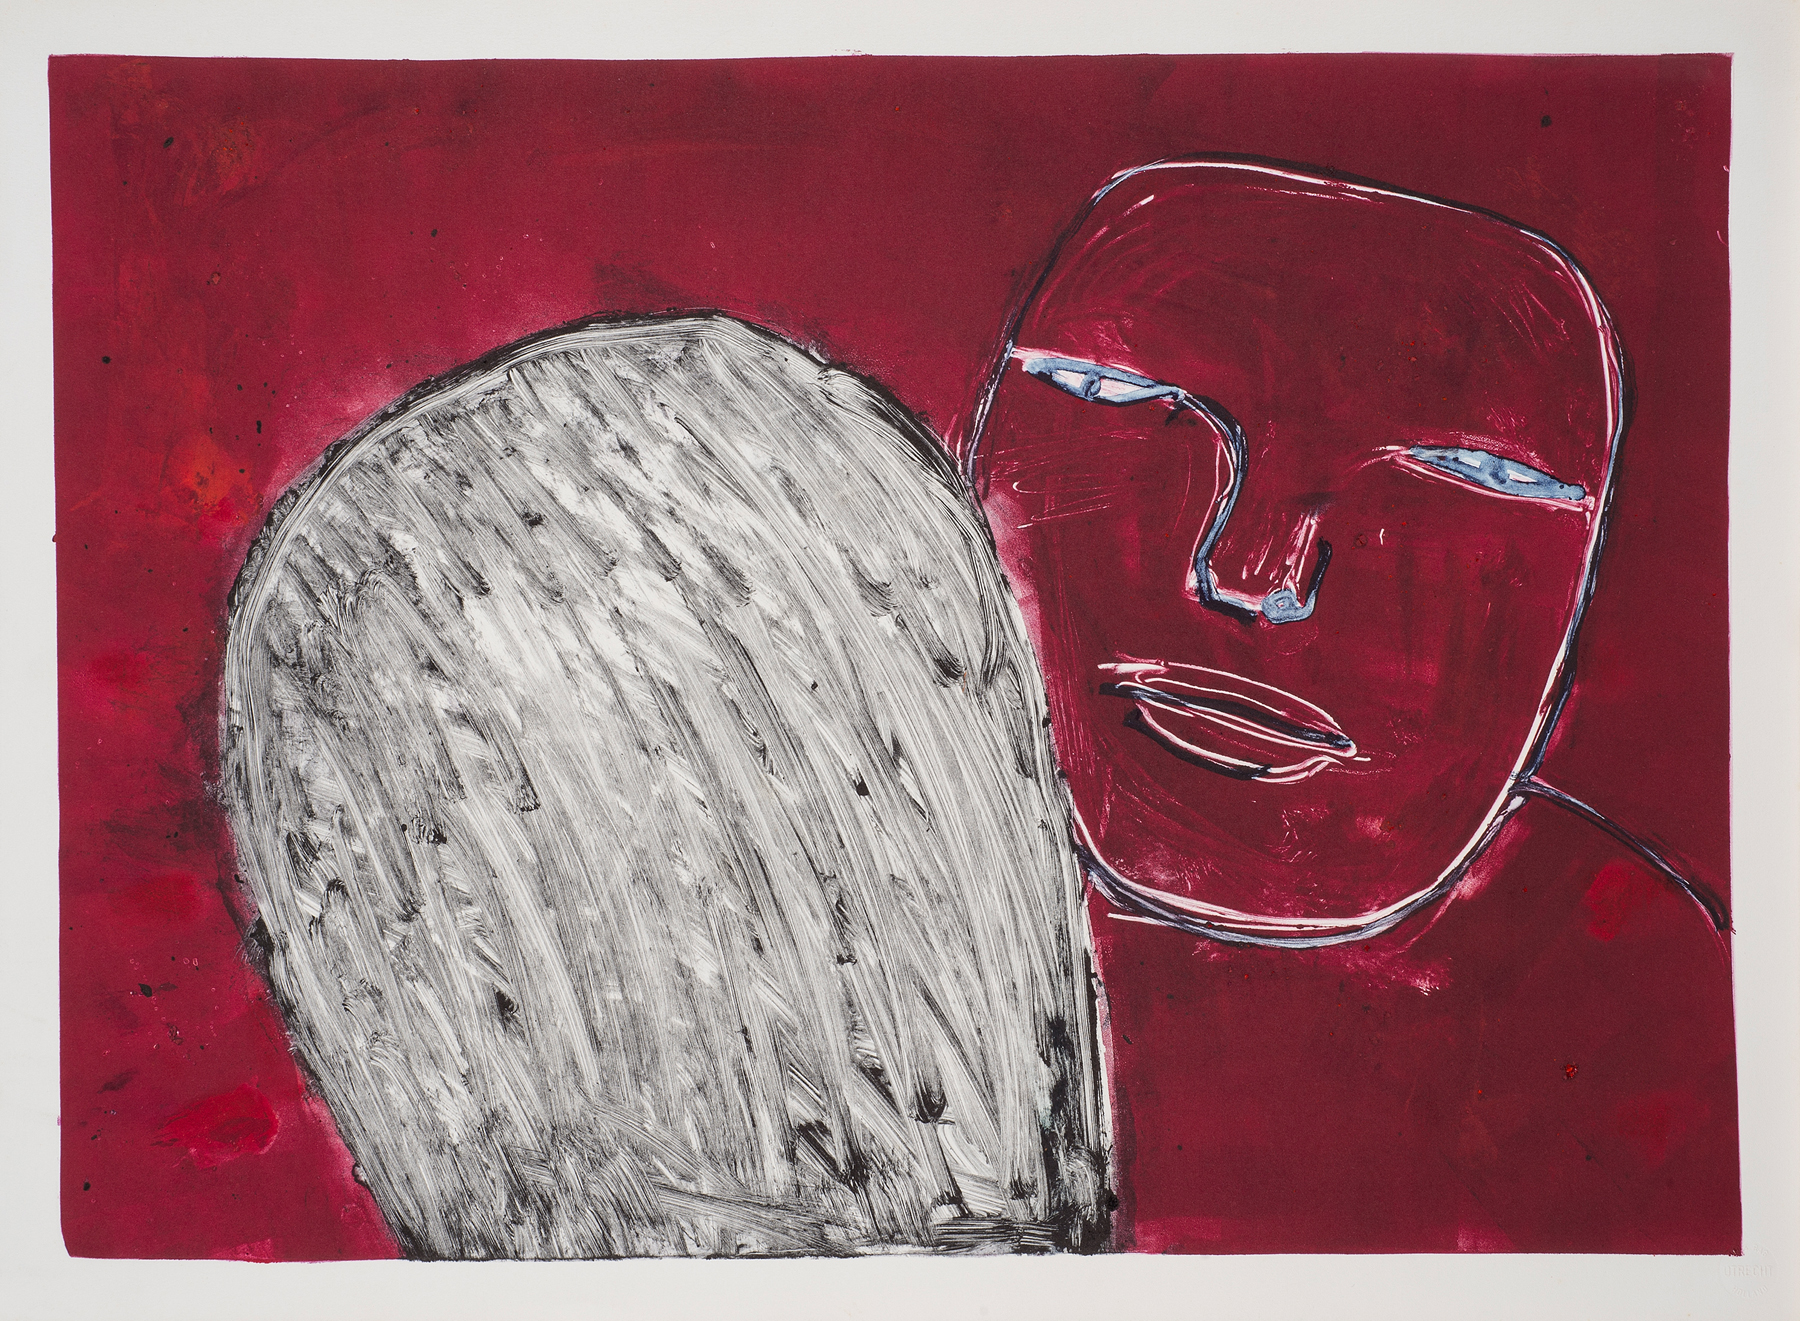 Untitled , ca. 1987. Monotype on paper, 13.5 x 19 in. (34 x 48 cm.)